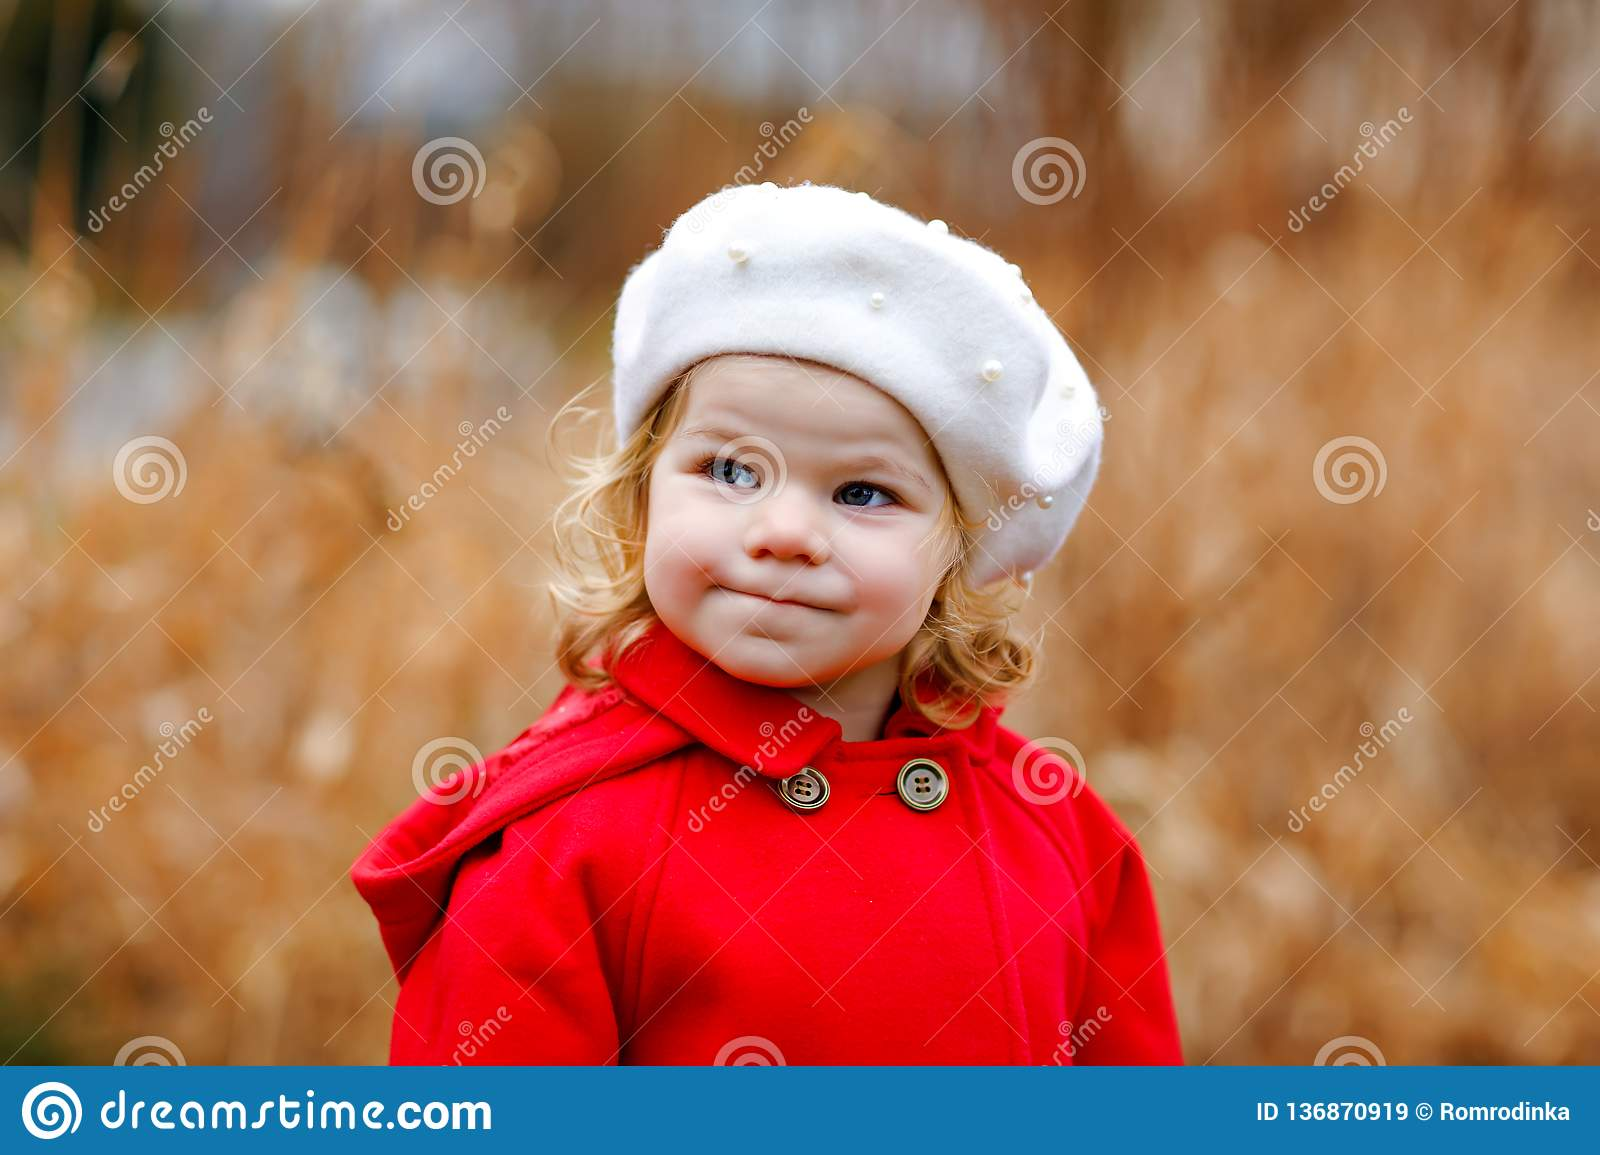 ae2dcc88c Outdoor portrait of little cute toddler girl in red coat and white fashion  hat barret.